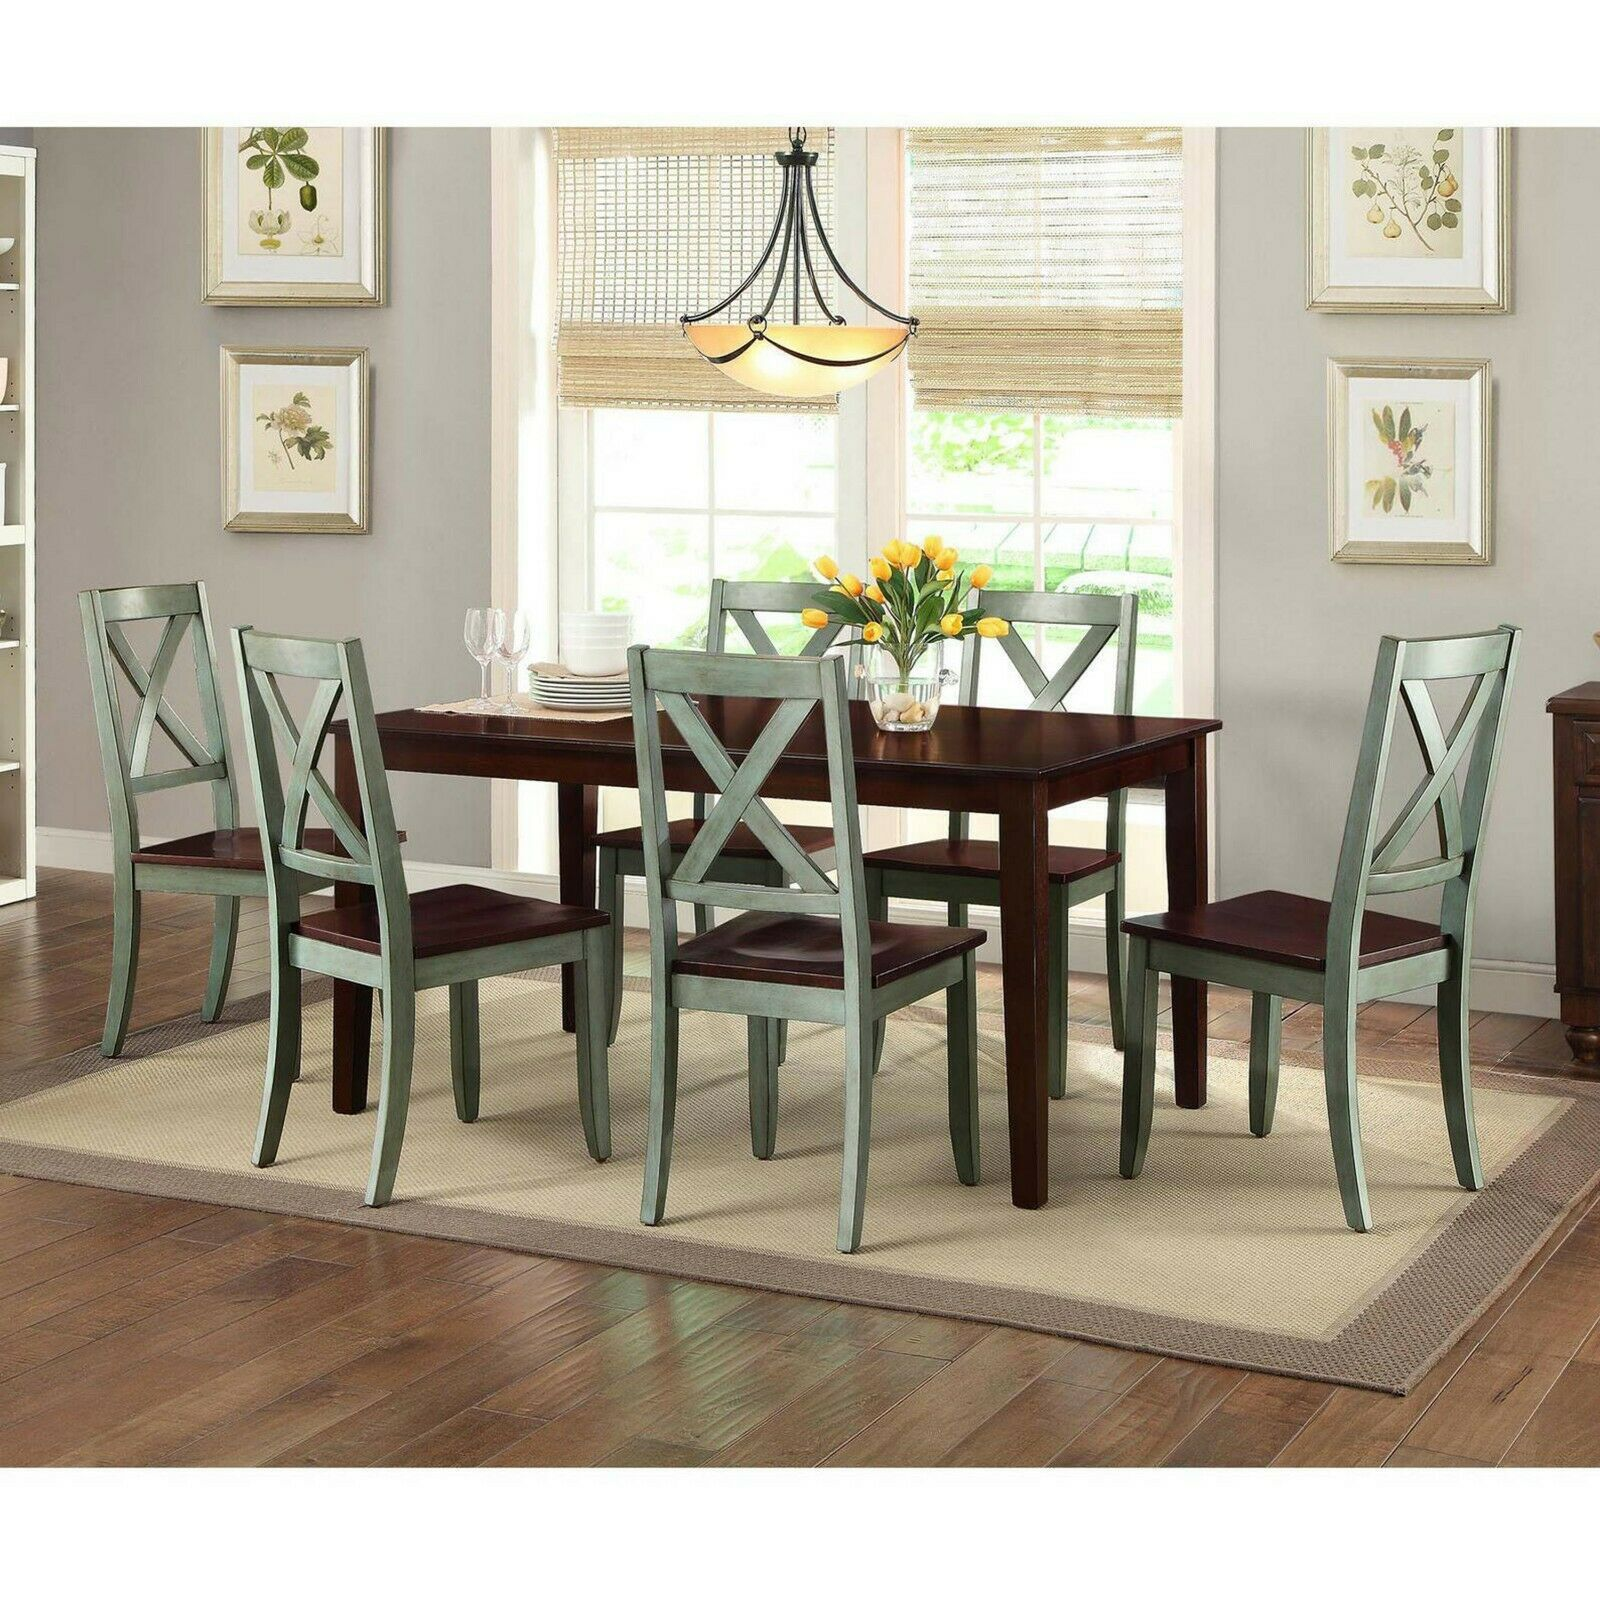 Details About Dining Room Set Farmhouse Kitchen Tables And Chairs